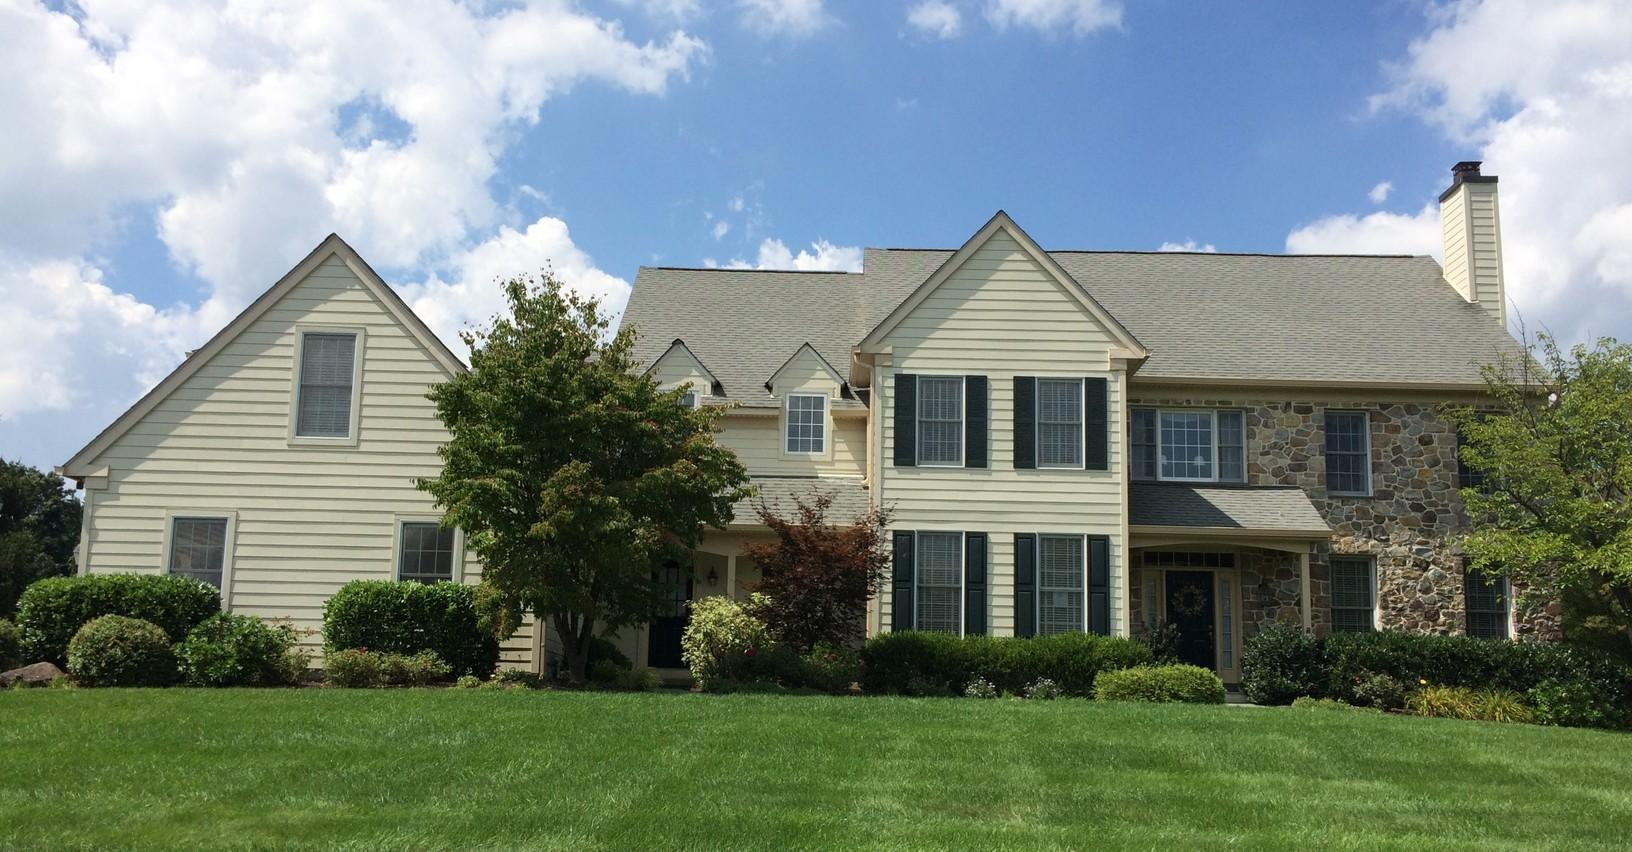 Stucco Remediation Project with James Hardie Siding in Malvern, PA - After Photo